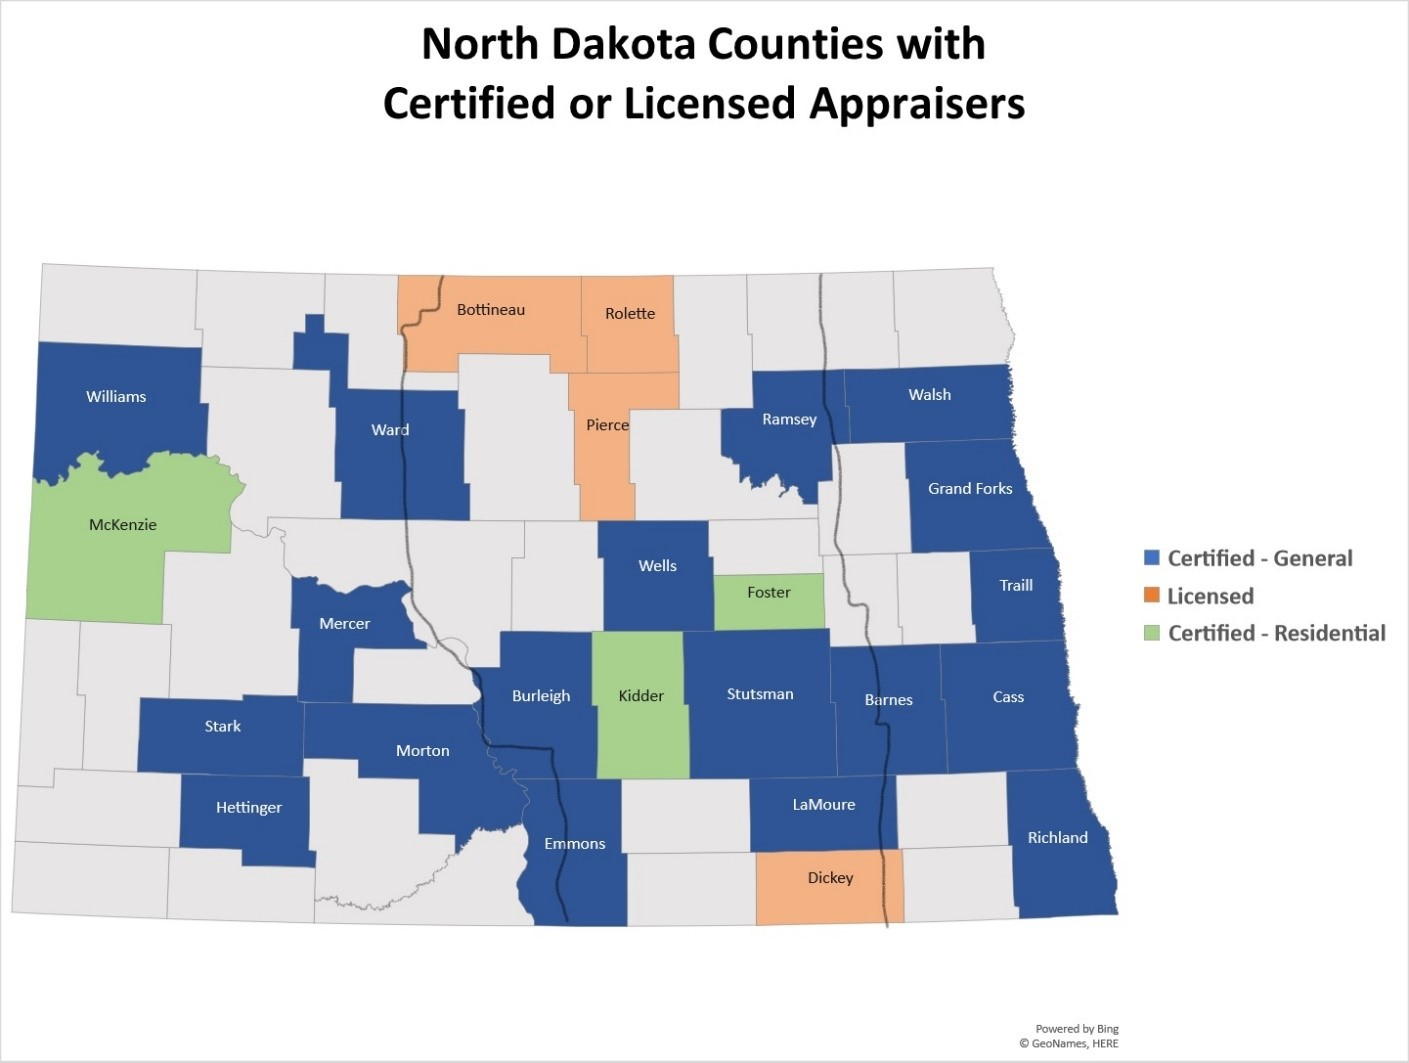 North Dakota Appraisers by County